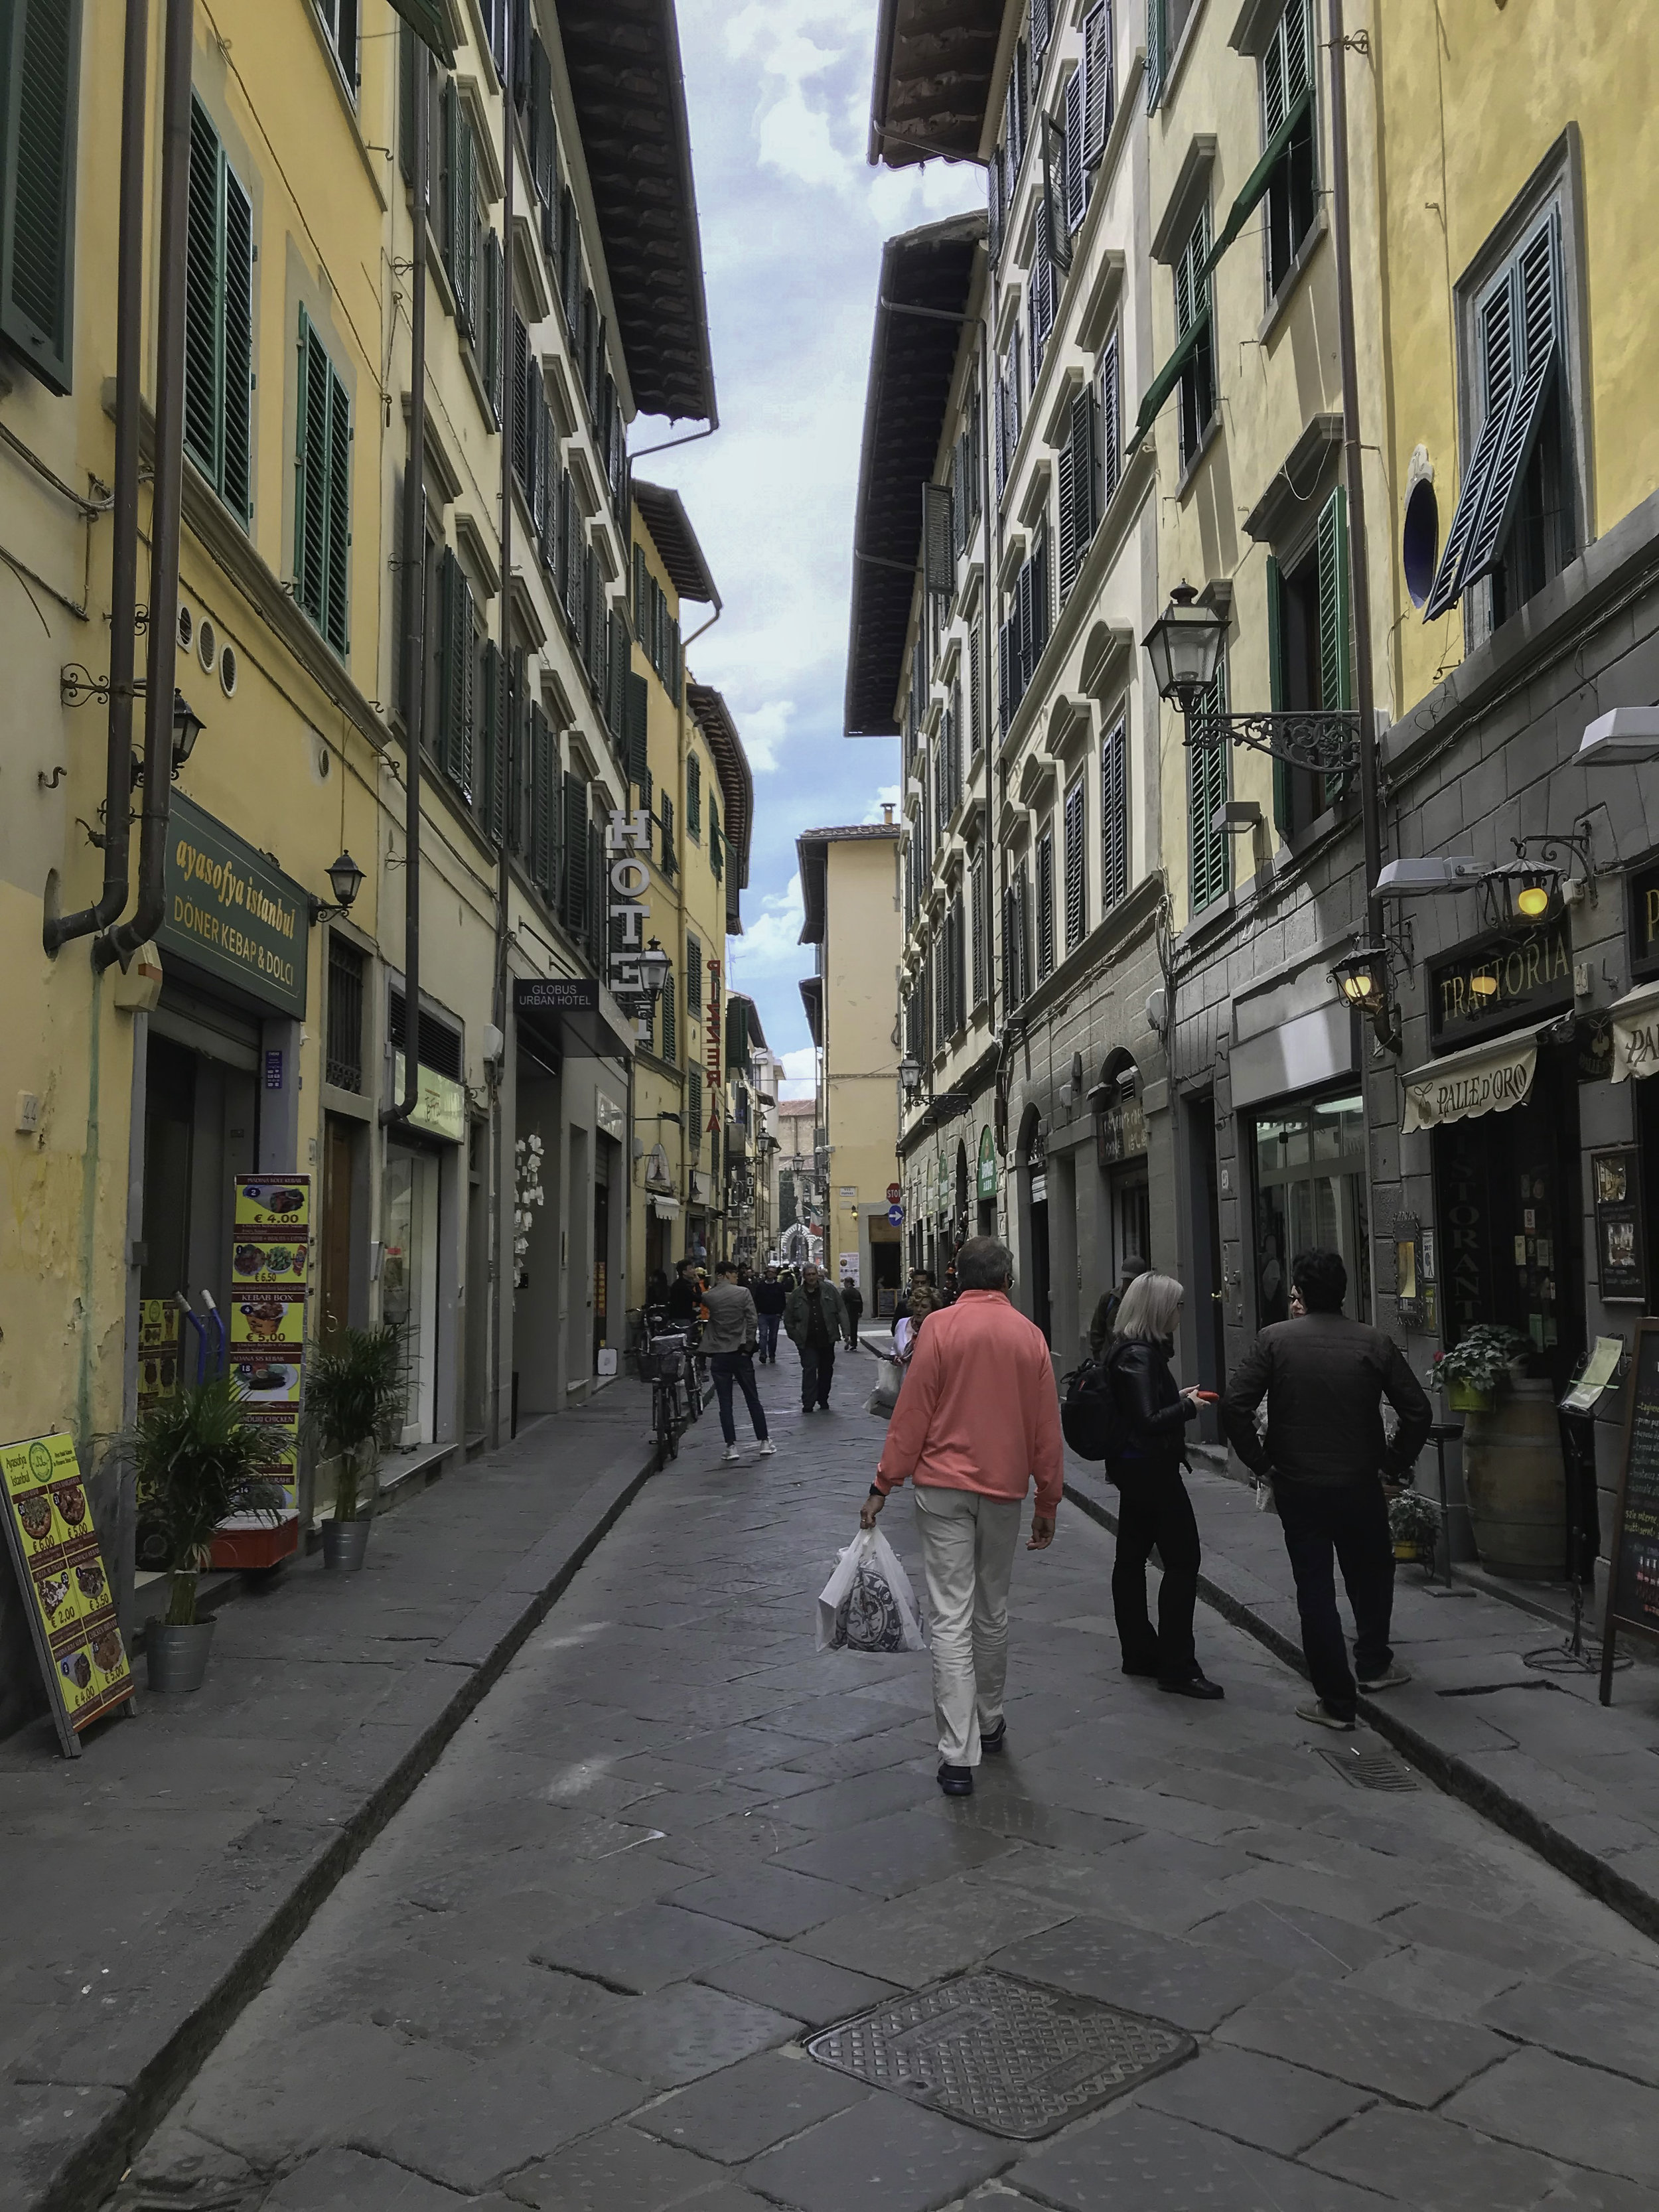 Wandering the narrow avenues of Florence amid leather shops, coffee and gelato bars and pizza parlors.